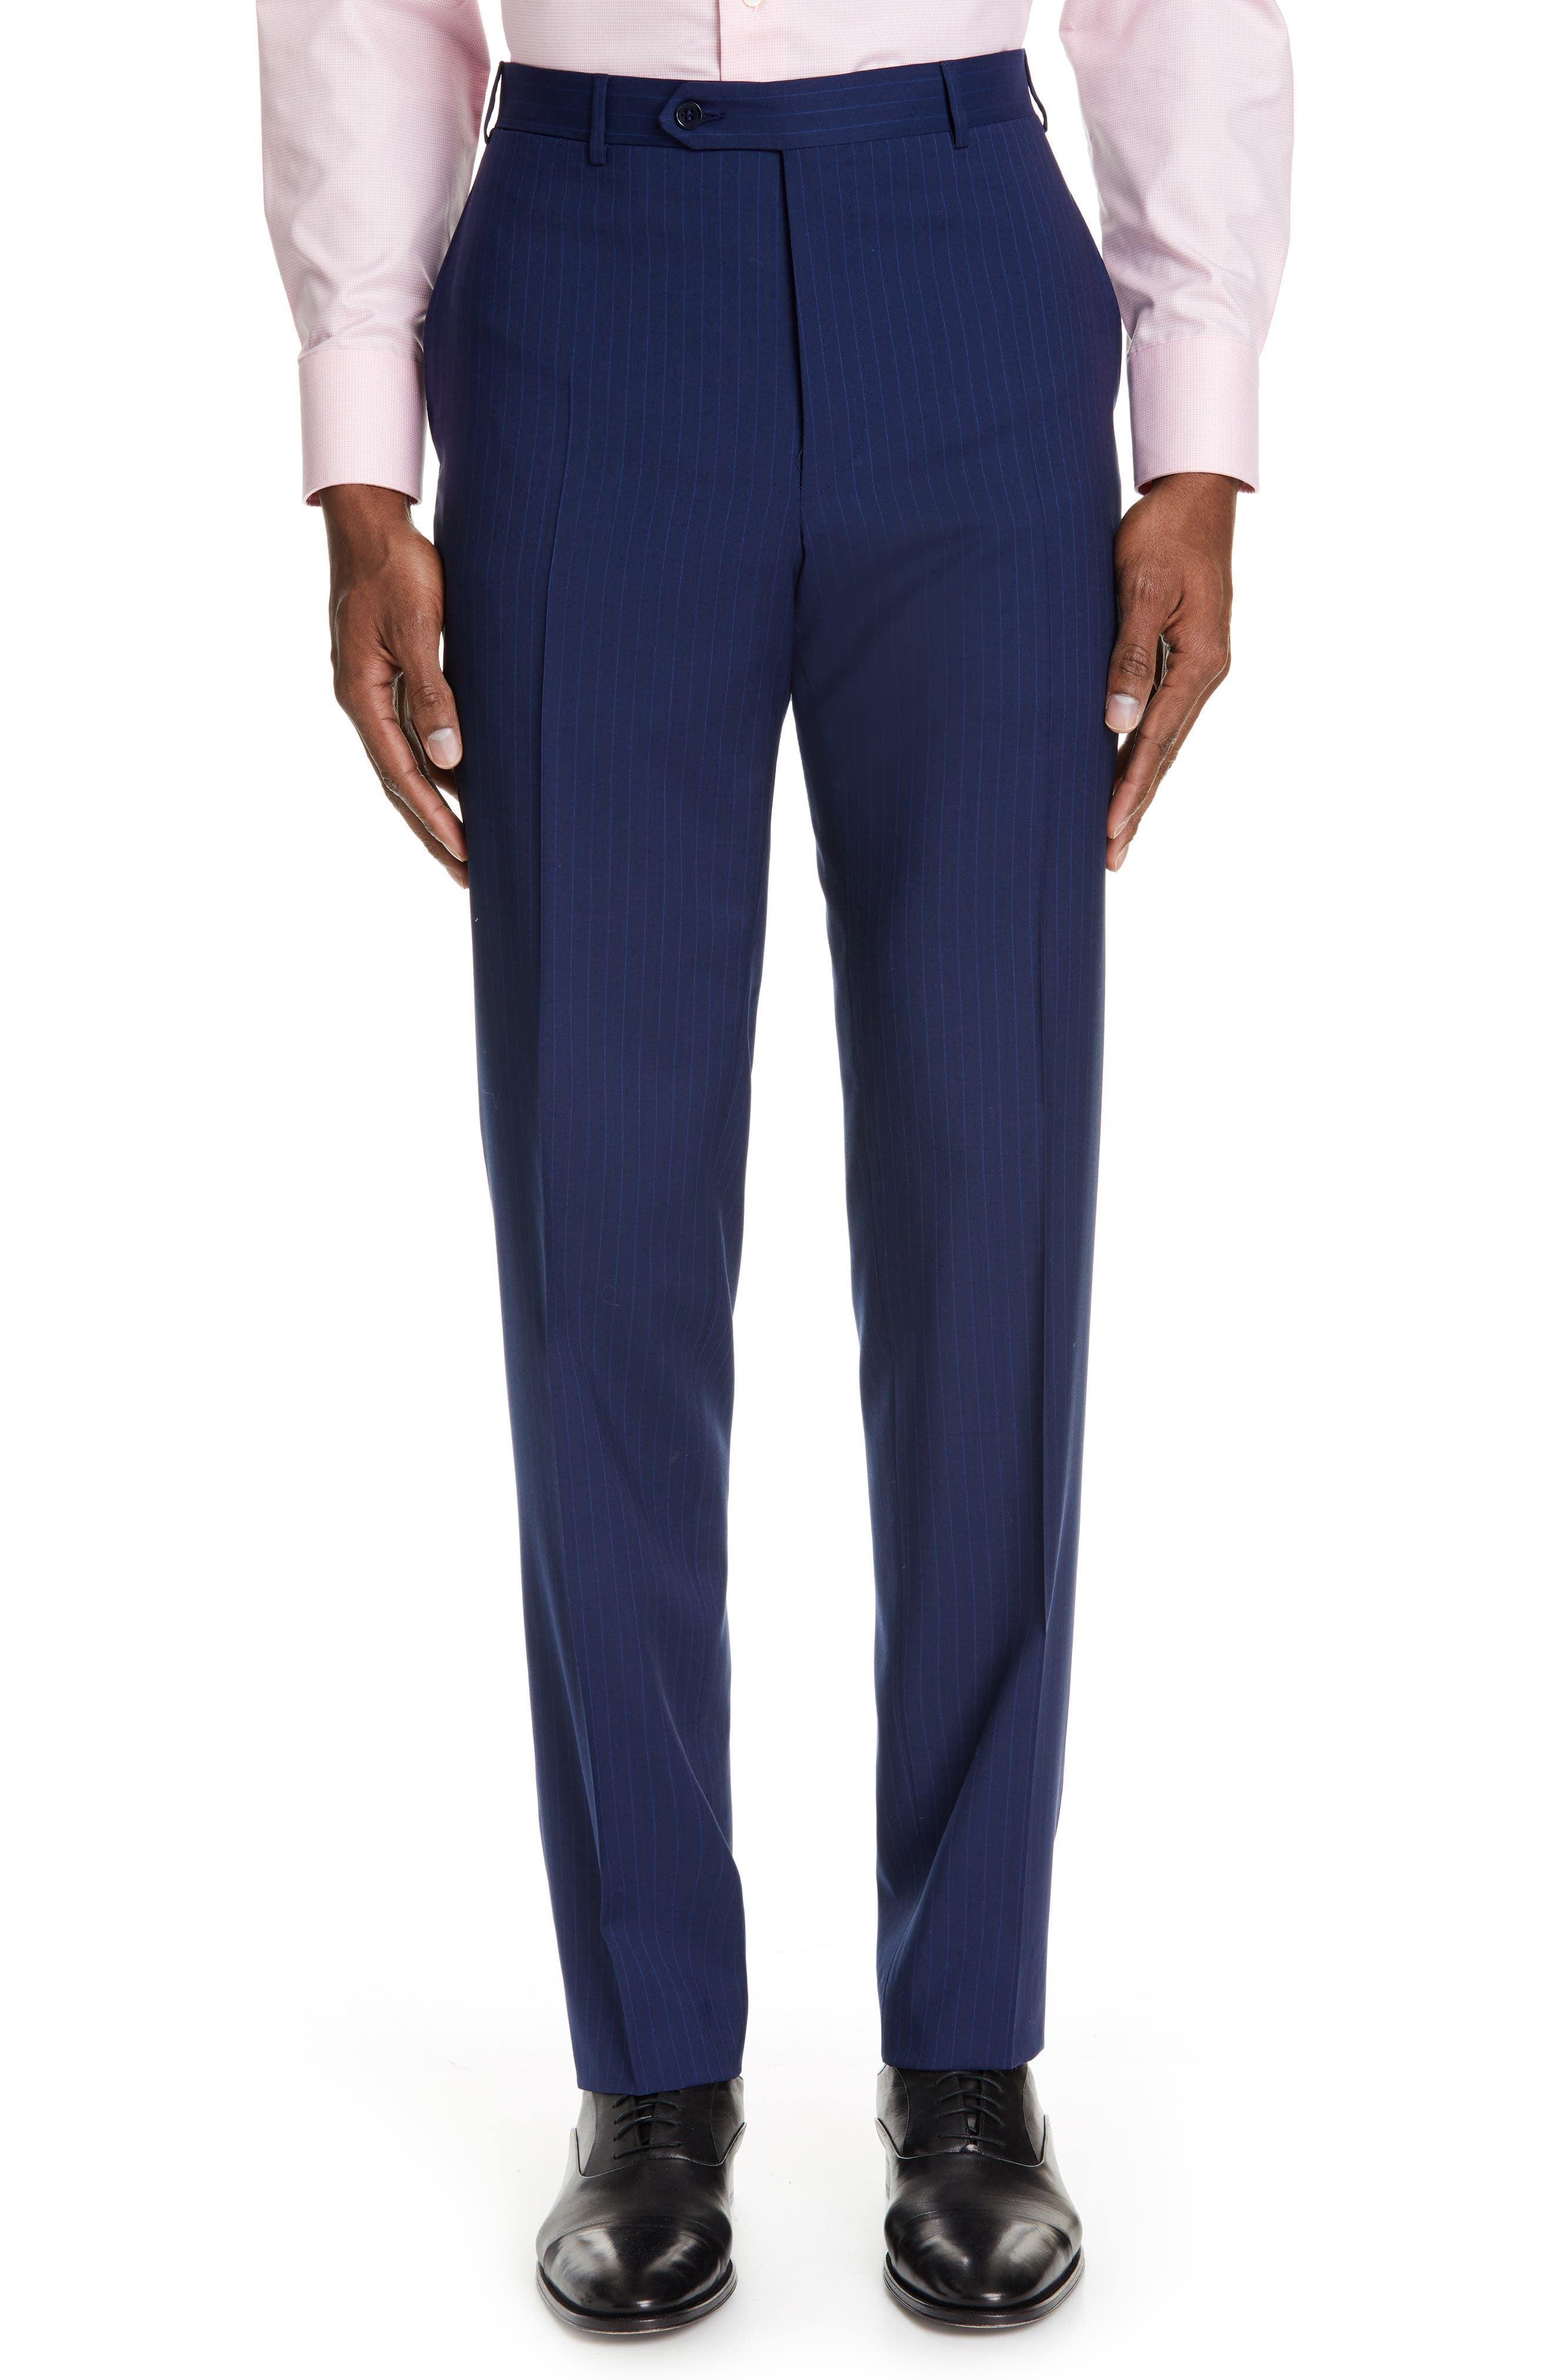 CANALI, Sienna Classic Fit Stripe Wool Suit, Alternate thumbnail 6, color, BLUE